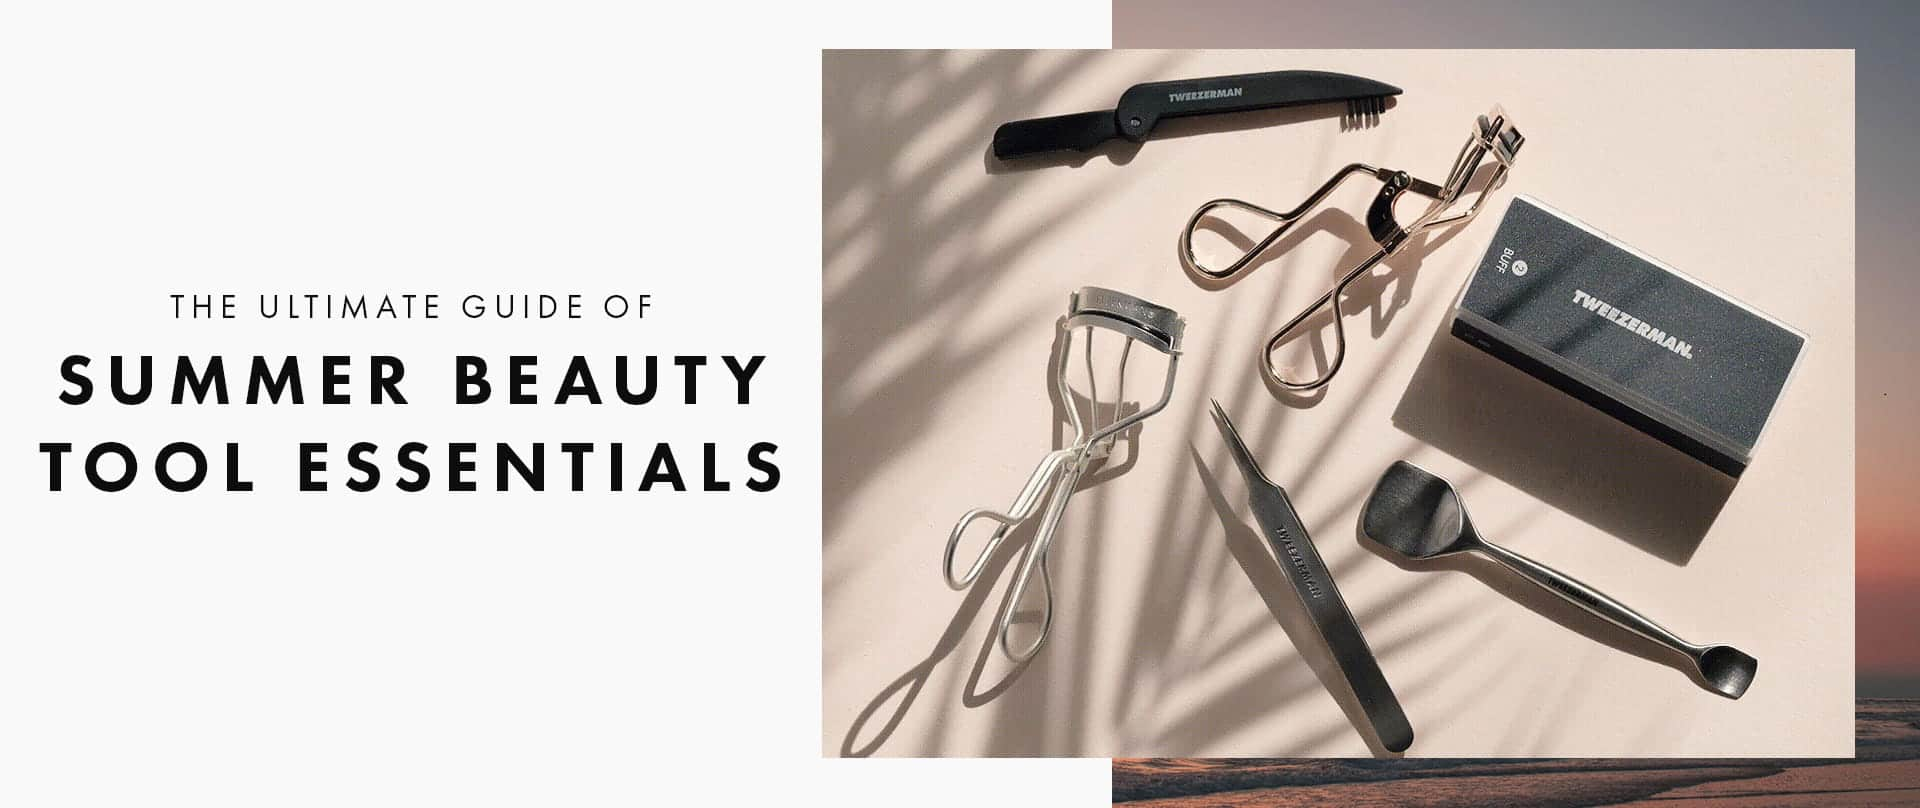 A selection of summer beauty tool essentials, lash curlers, pore prep tool, tweezer, precision folding brow razor, and smooth nail buffer block